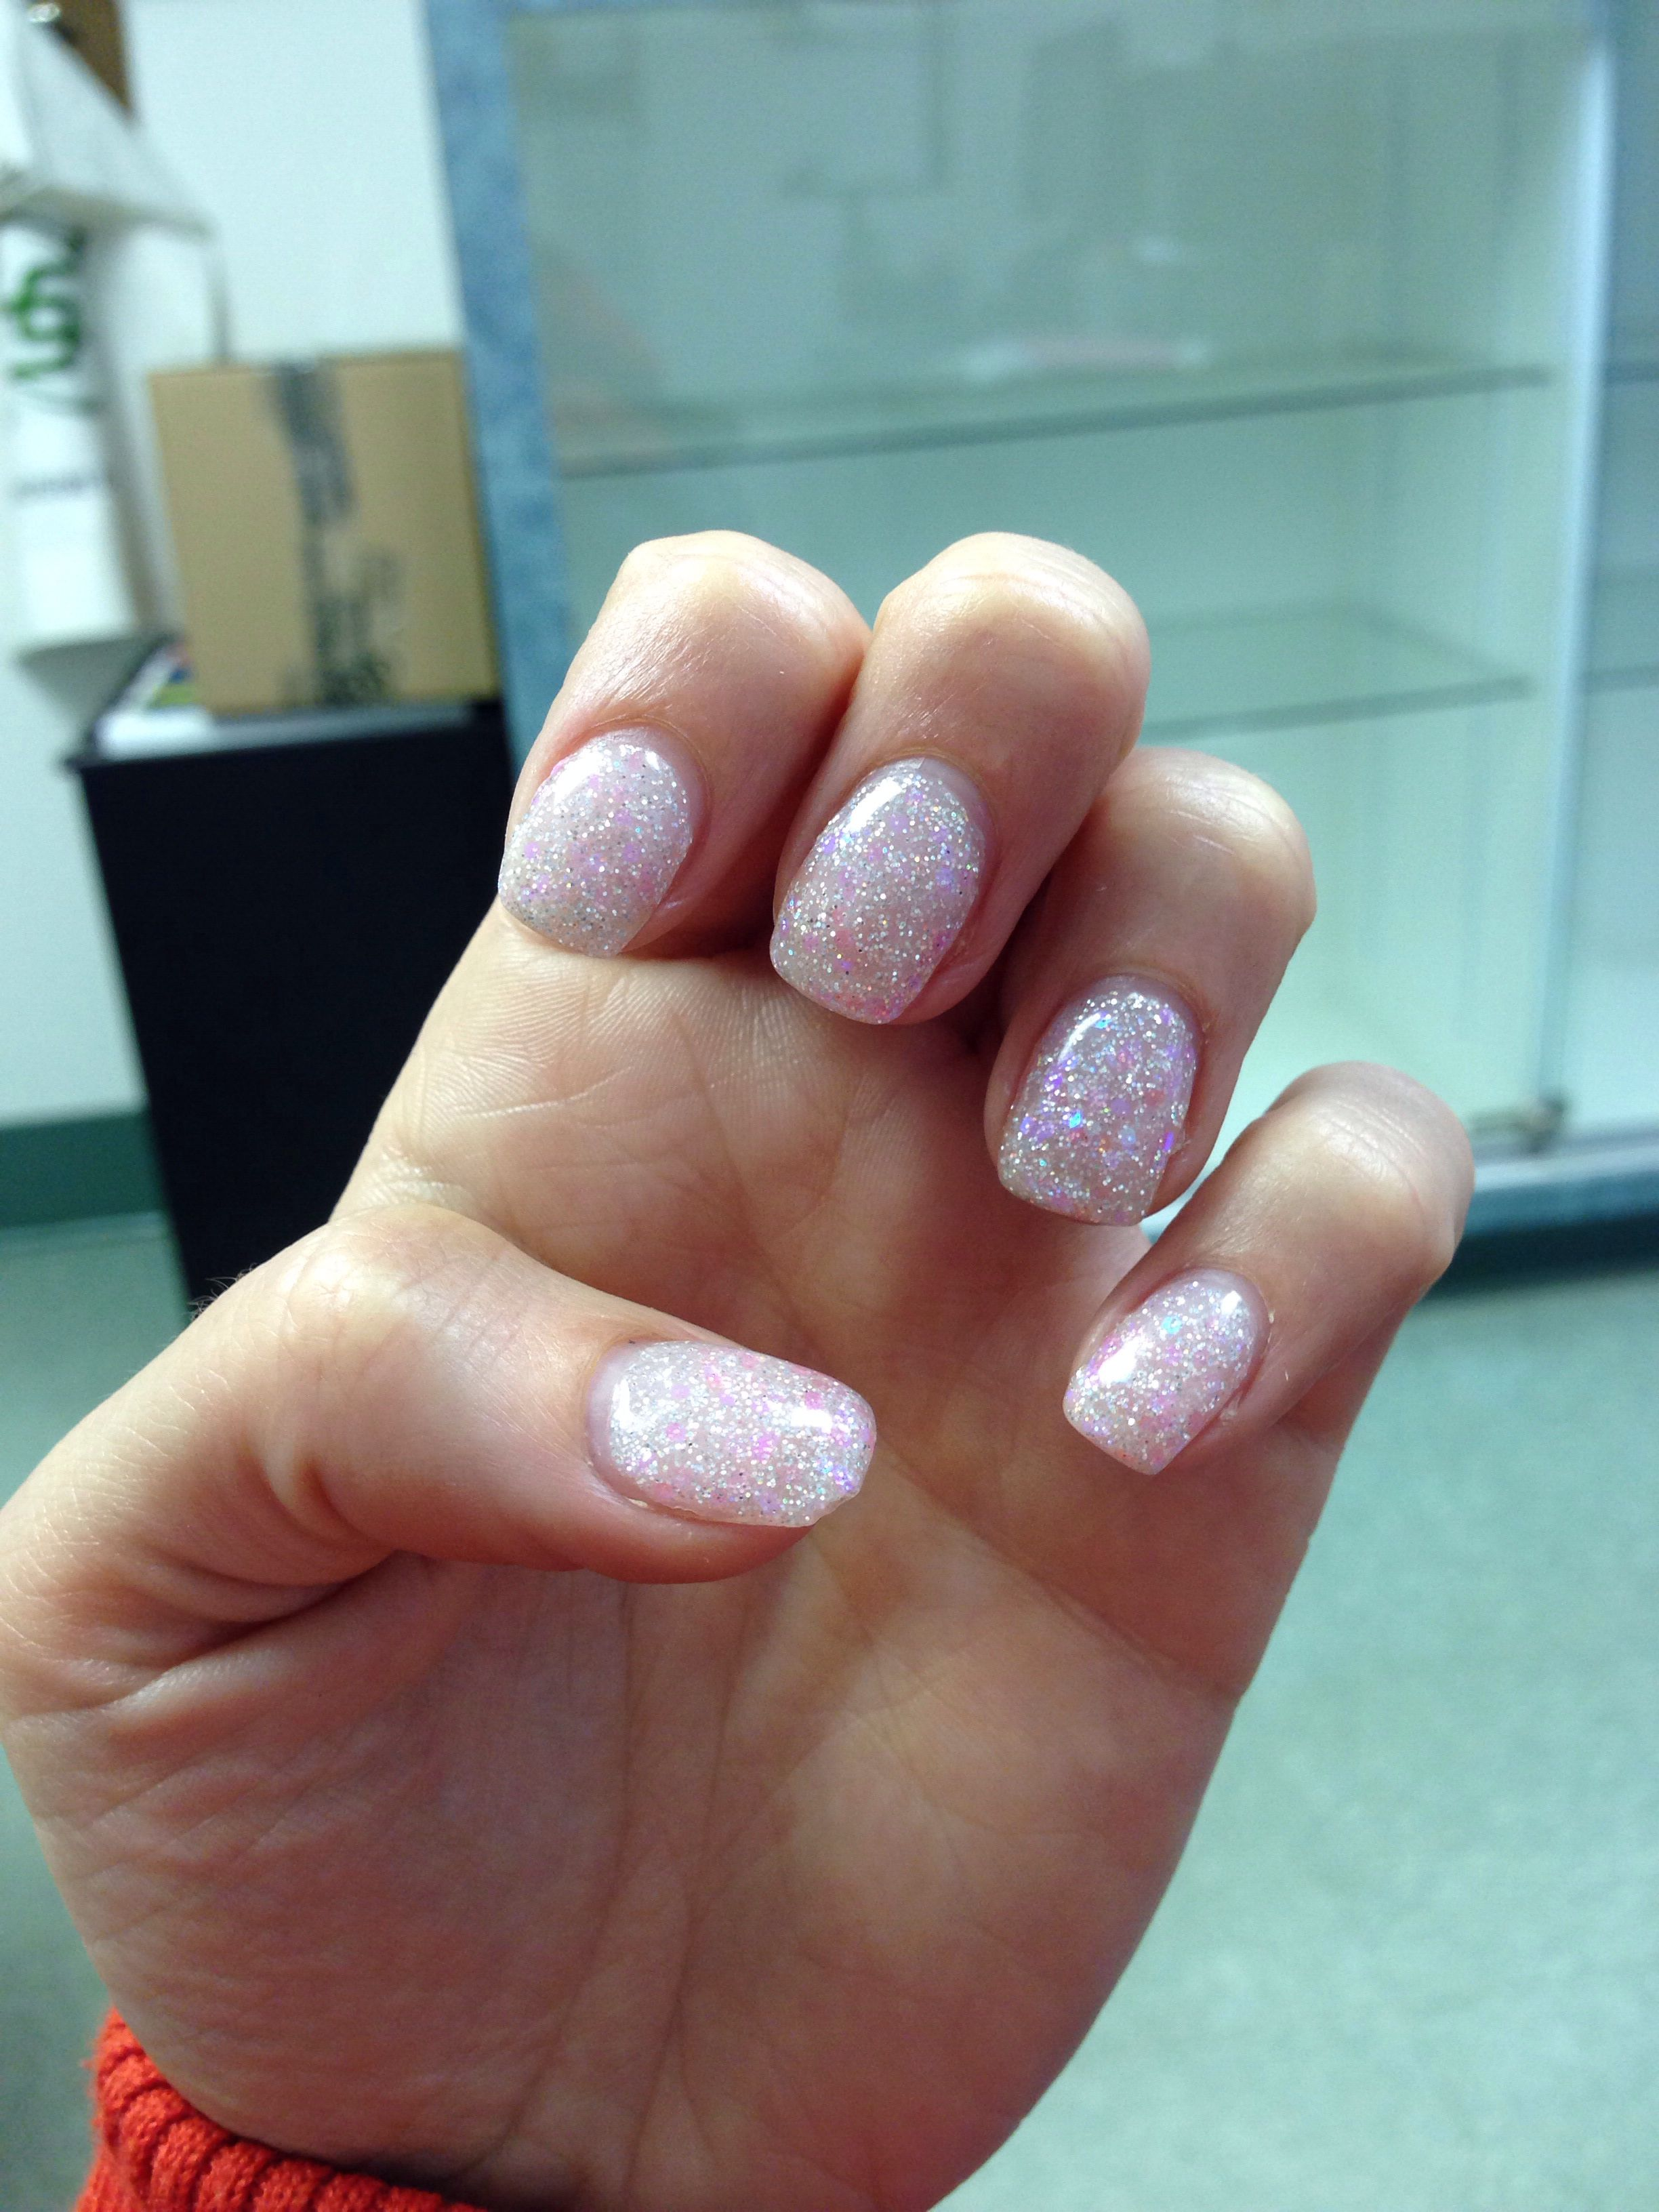 Gel nails March 31, 2014. And they glow in the dark!! | My nails ...